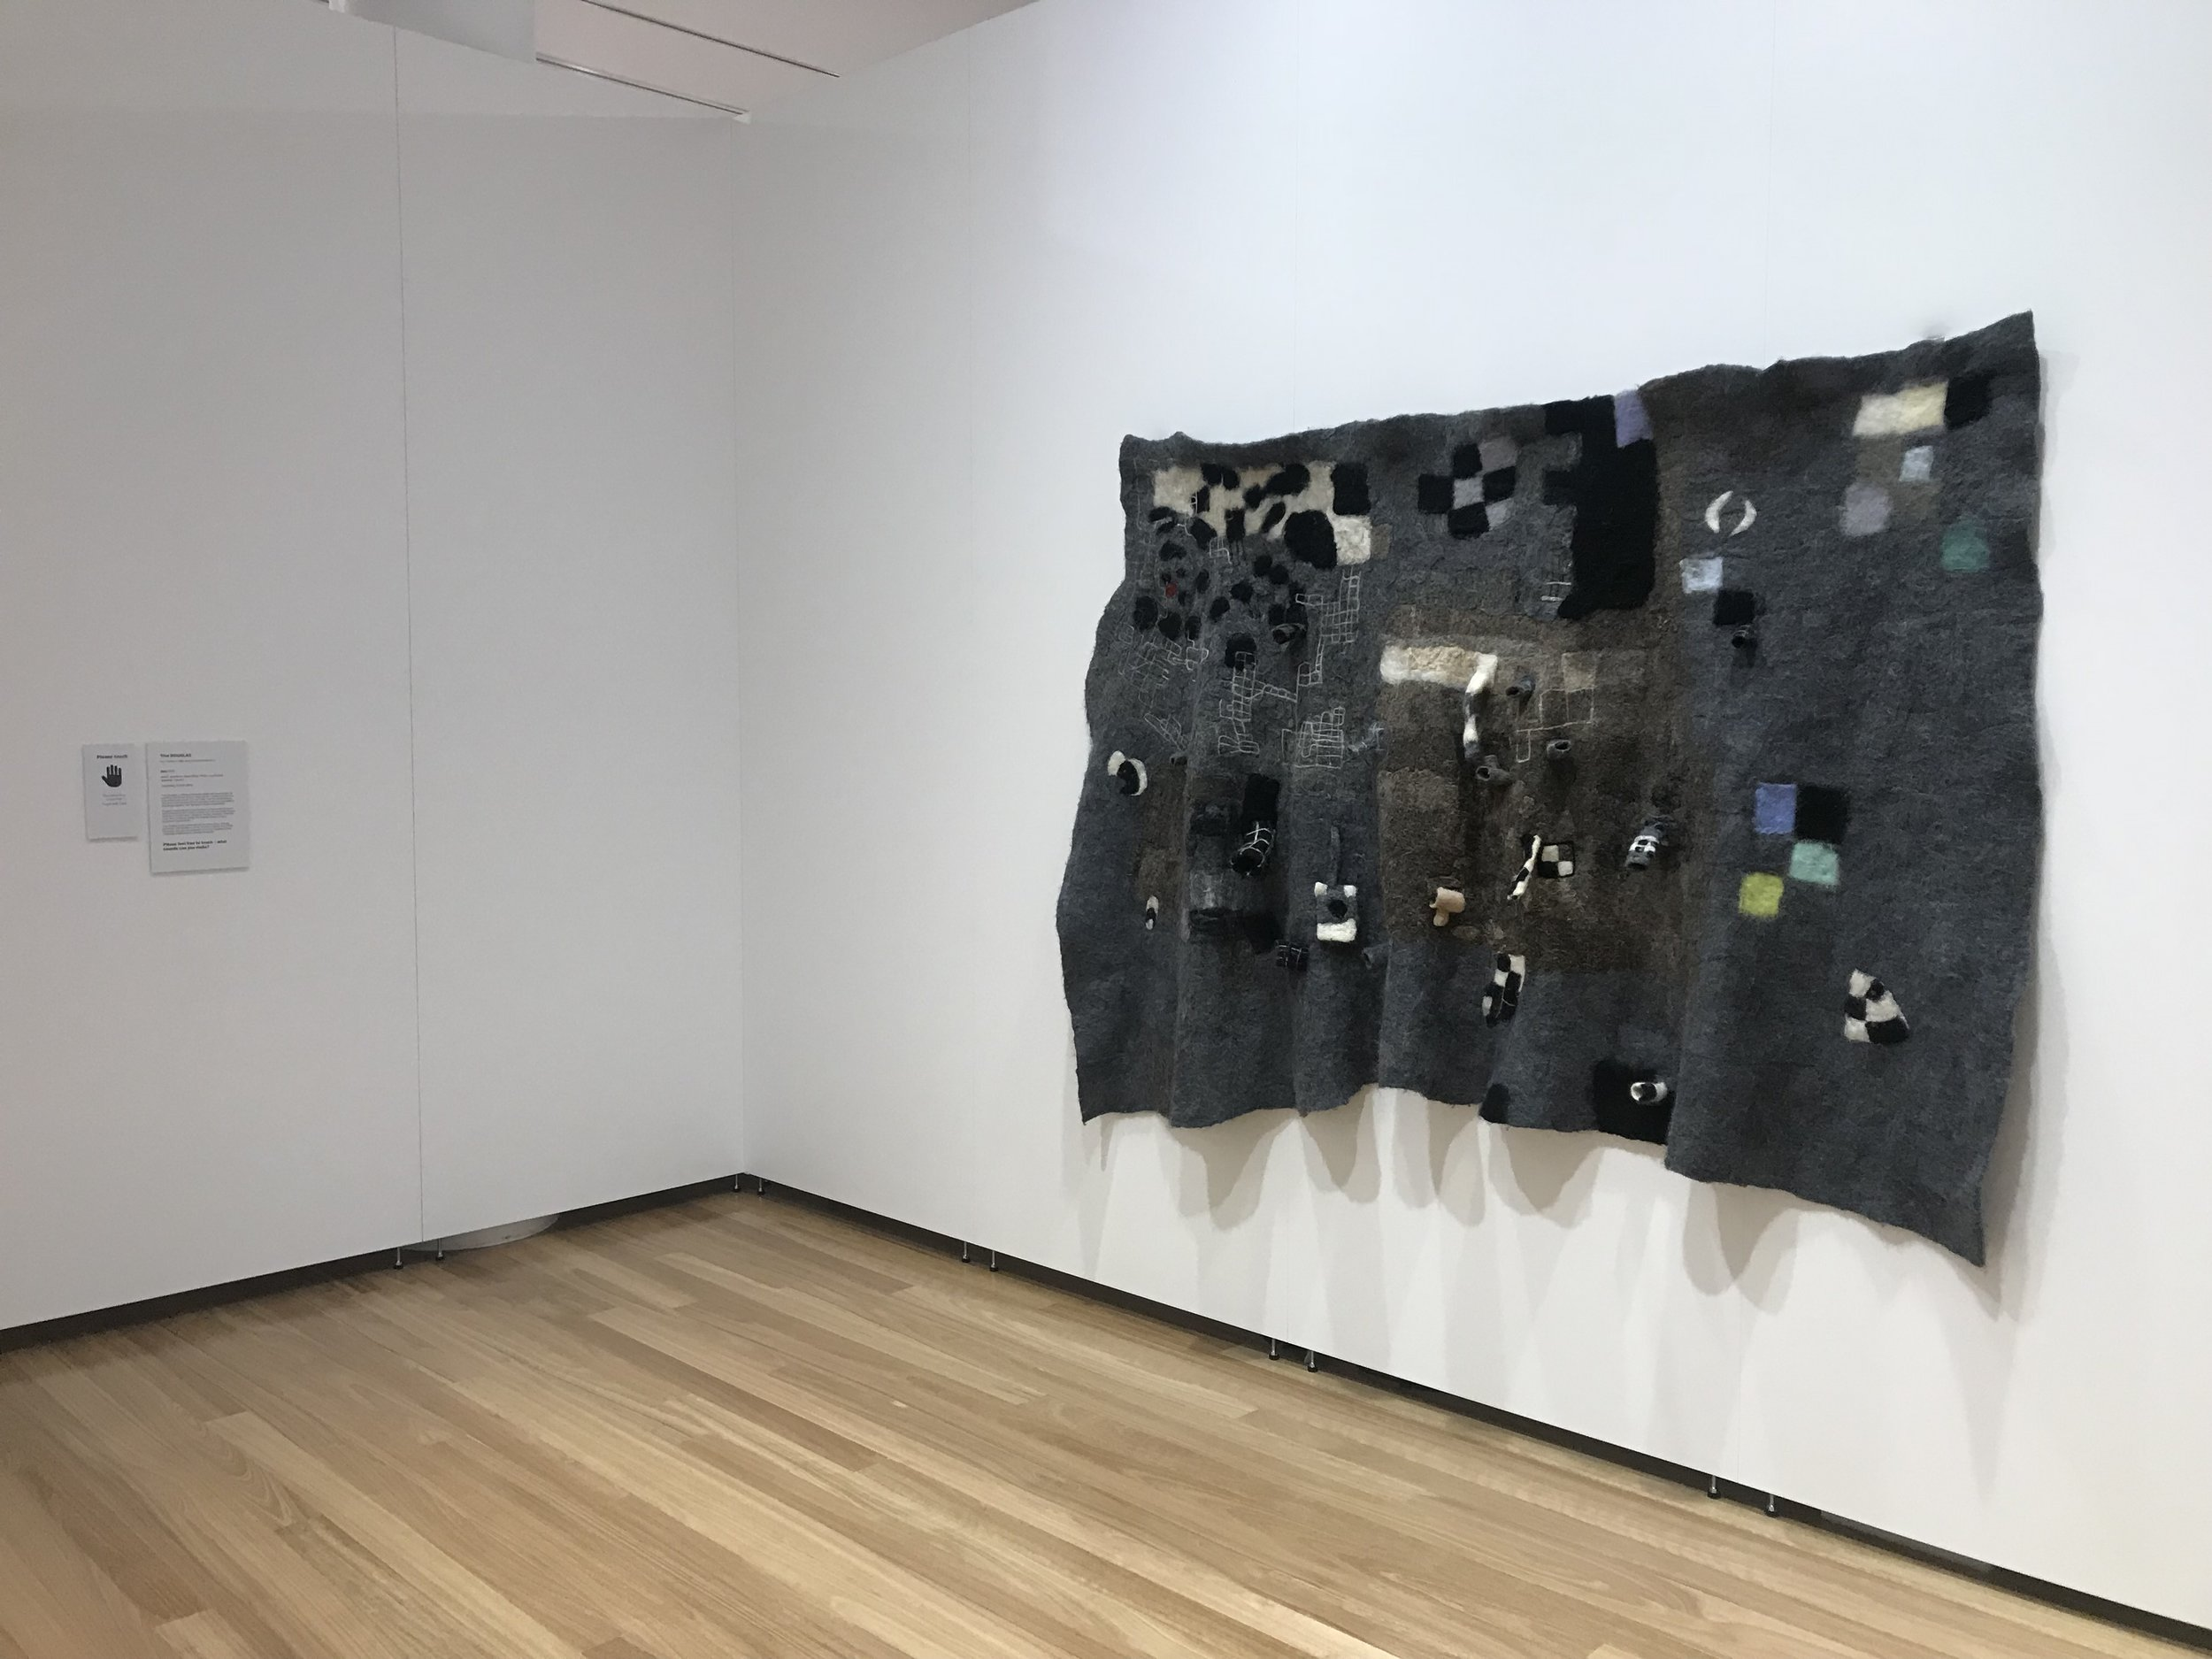 Felt (installation view) 2017  Wool, stainless steel fibre, micro controllers, speakers, sound.  260 x 140 cm  Let's Play: Art of our time, Bunjil Place Gallery